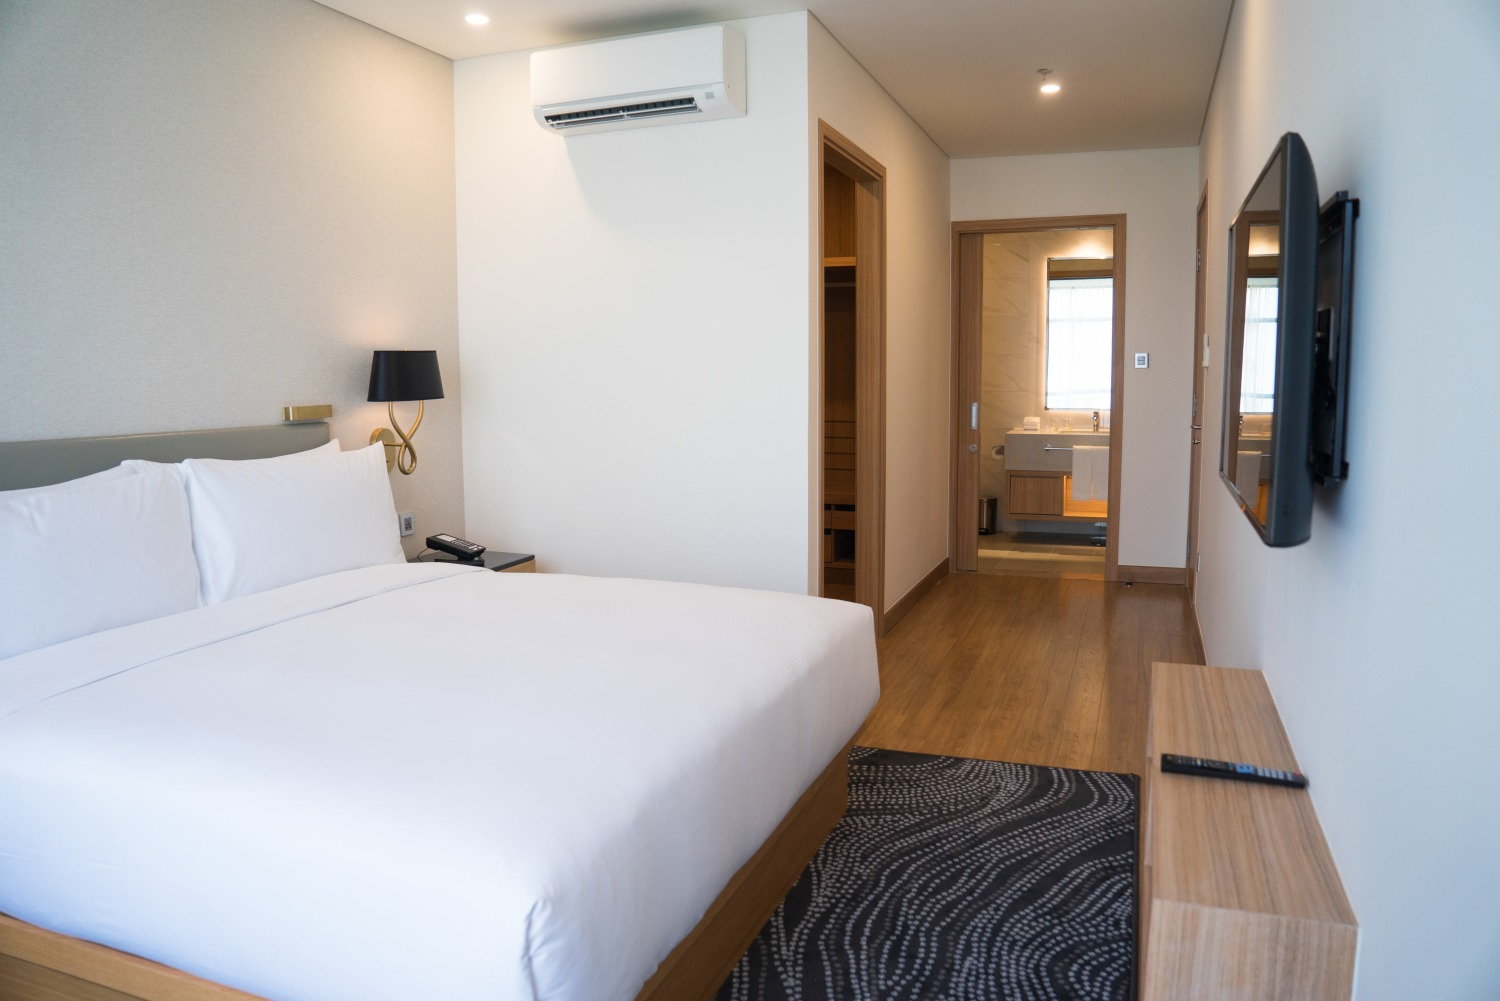 small hotel room interior with double bed bathroom